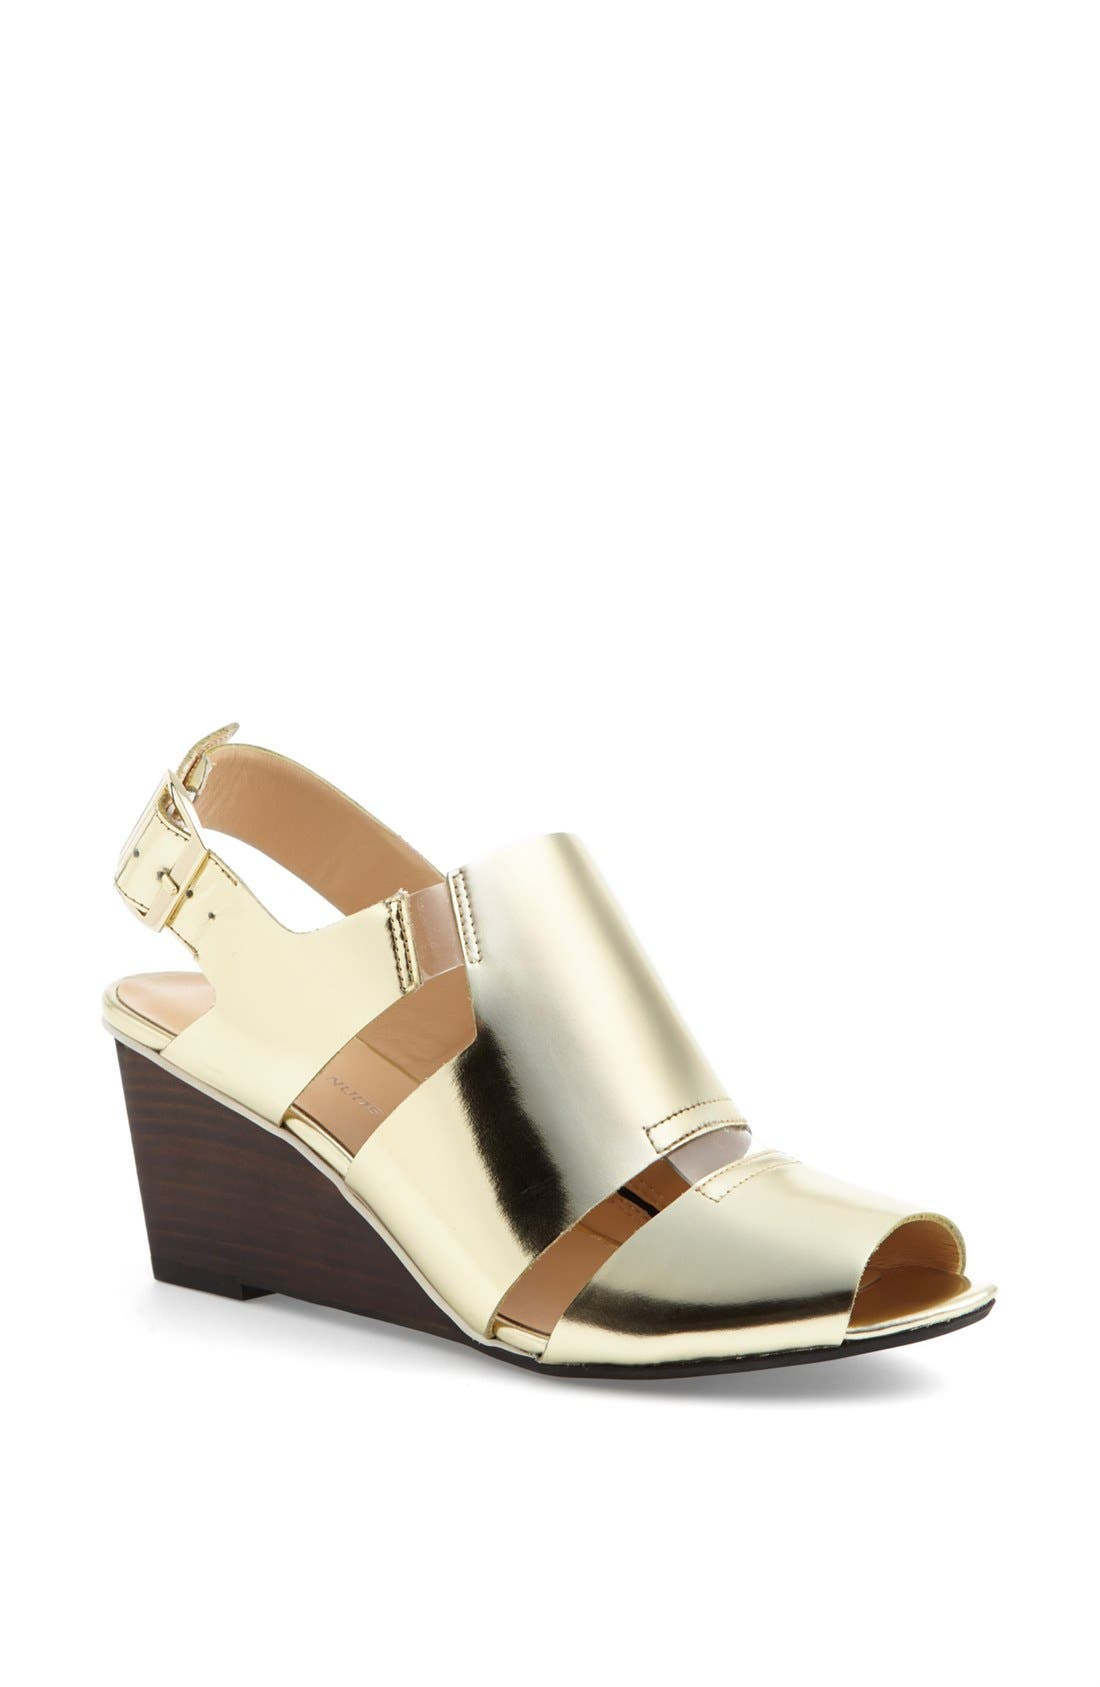 UNITED NUDE COLLECTION, 'Kim' Sandal, Main thumbnail 1, color, 710